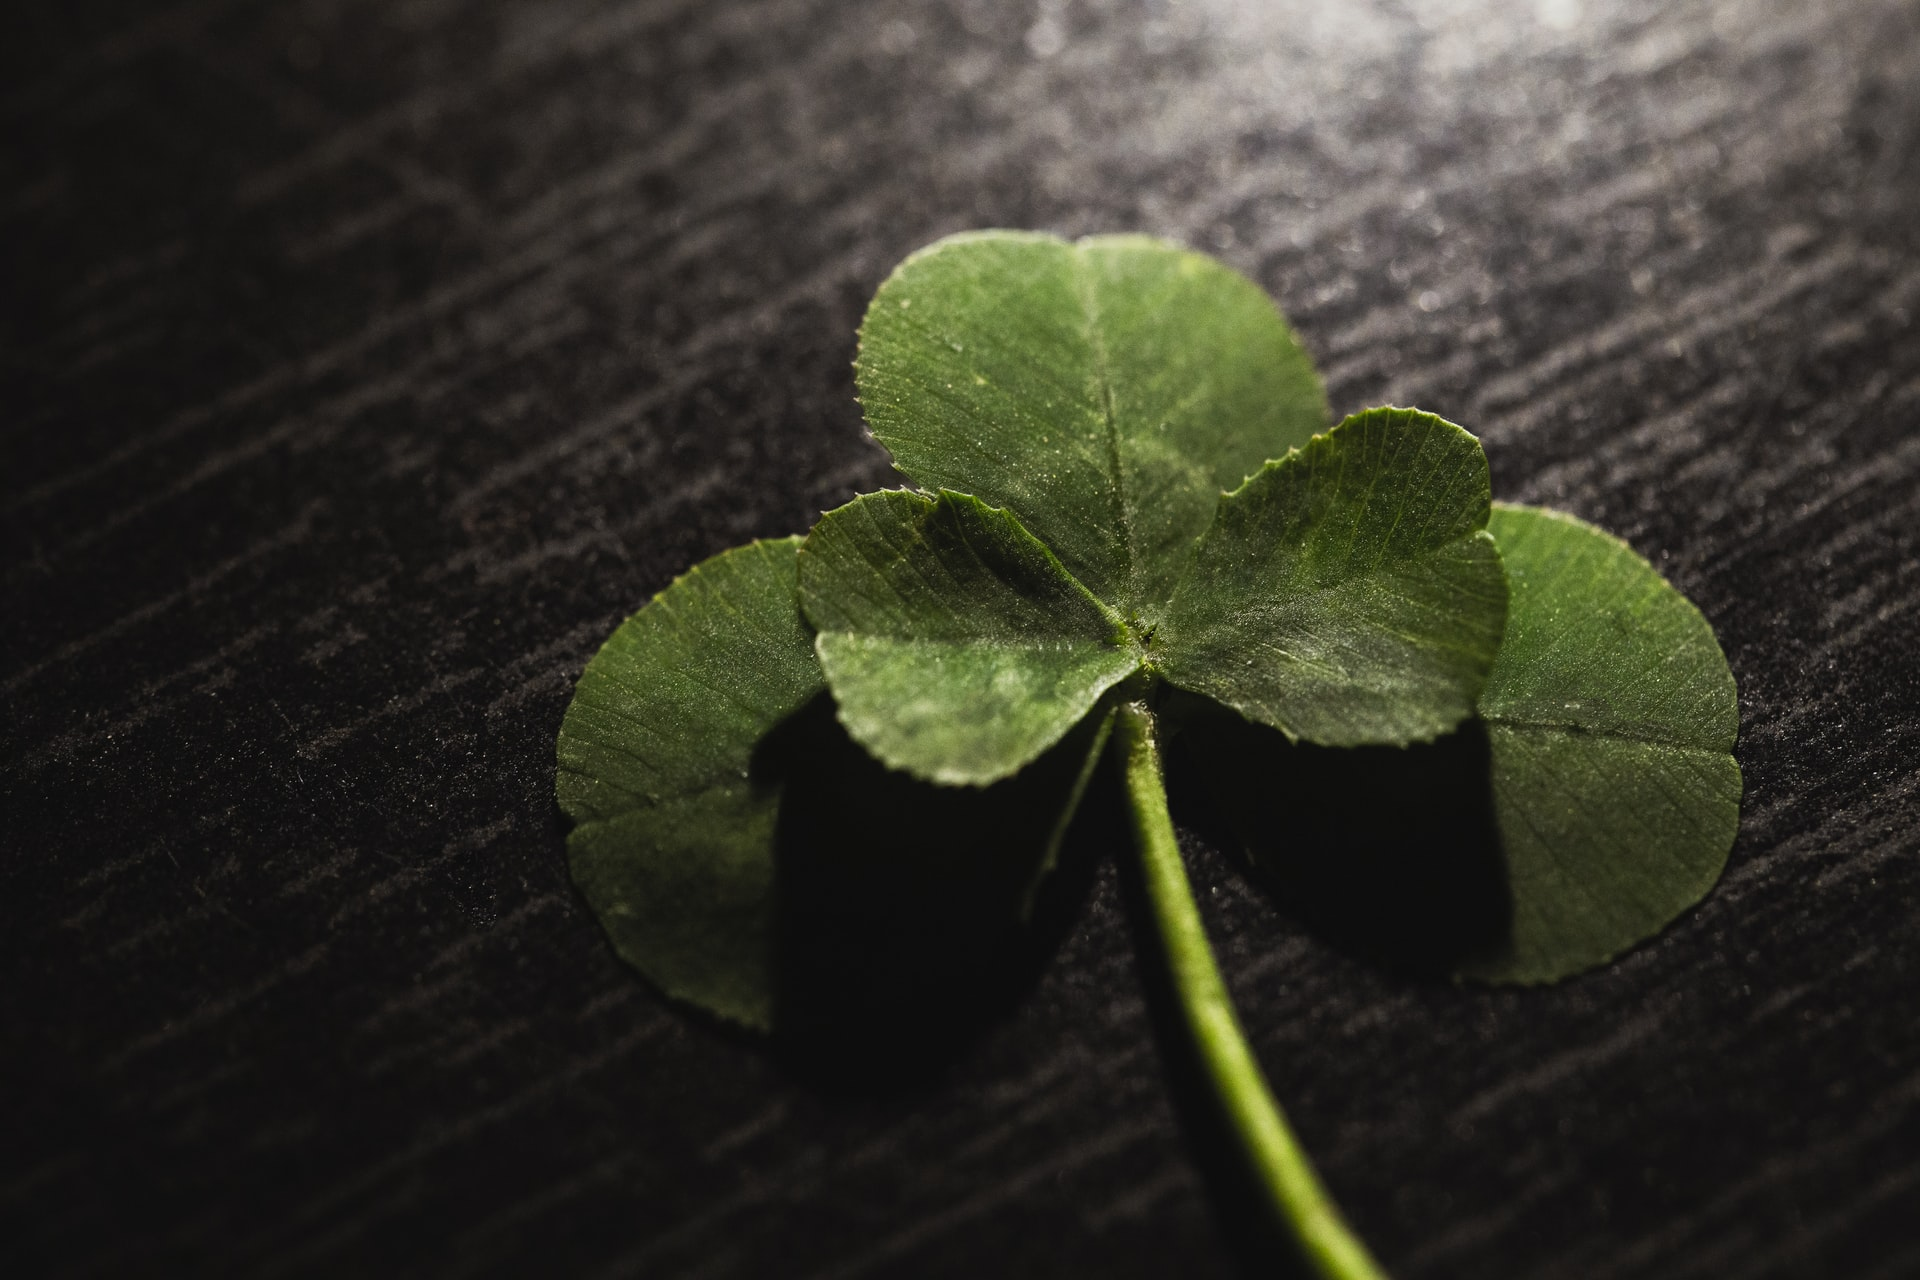 This image shows a clover on a black background.